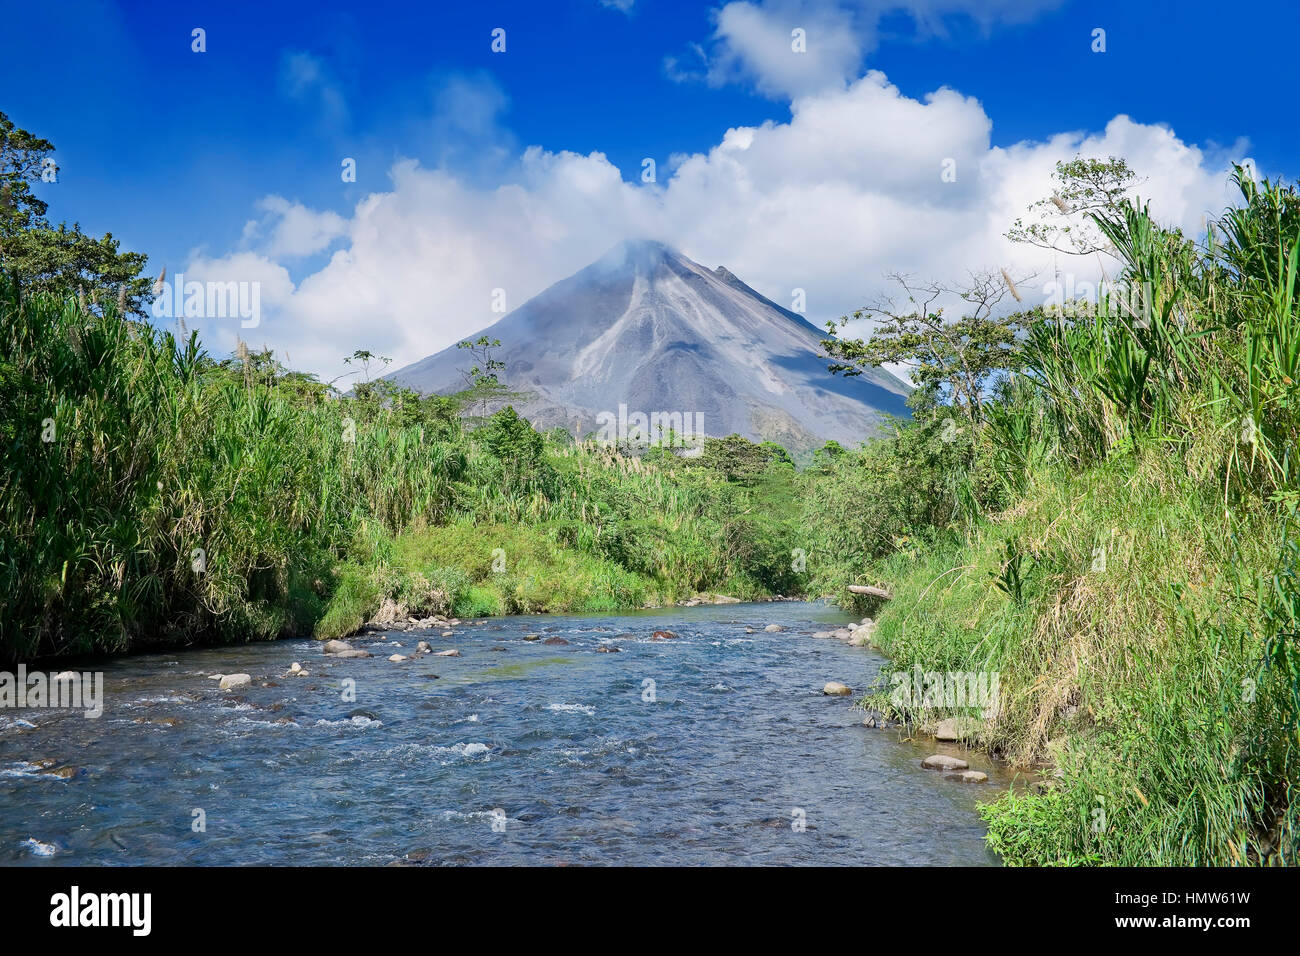 Le volcan Arenal, la Fortuna, Costa Rica Photo Stock